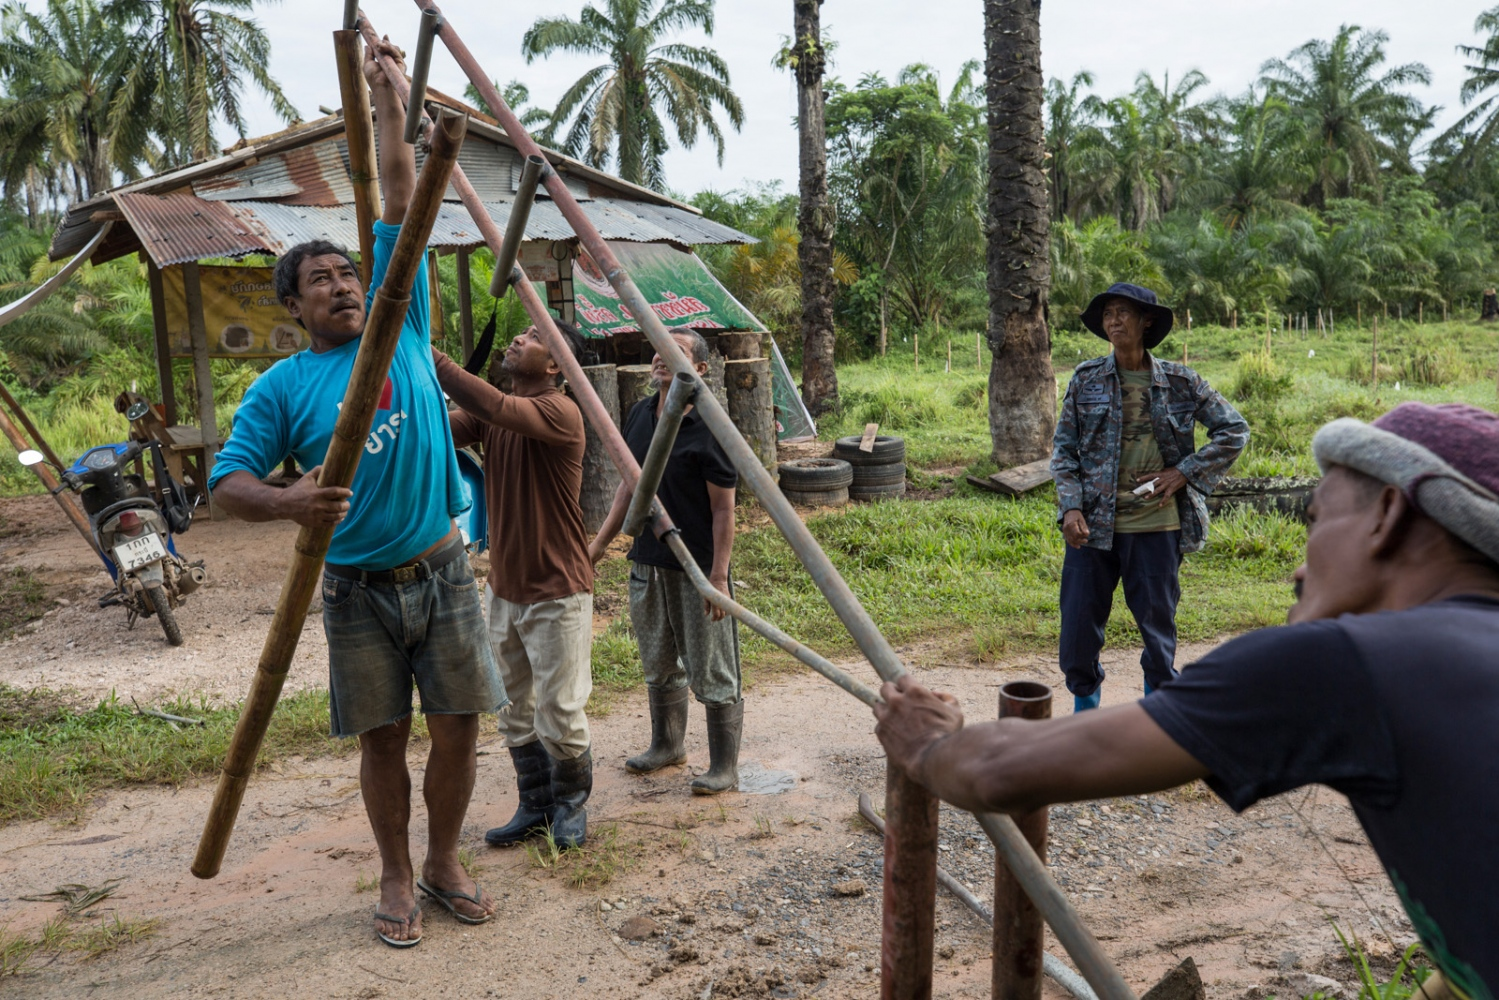 Locals of Klong Sai Pattana community erect a new security post and gate to the village. Safer that it was a few years ago the community has been able to expand its area for farming and also erect new security posts marking the new boundaries of their land. December 2018.